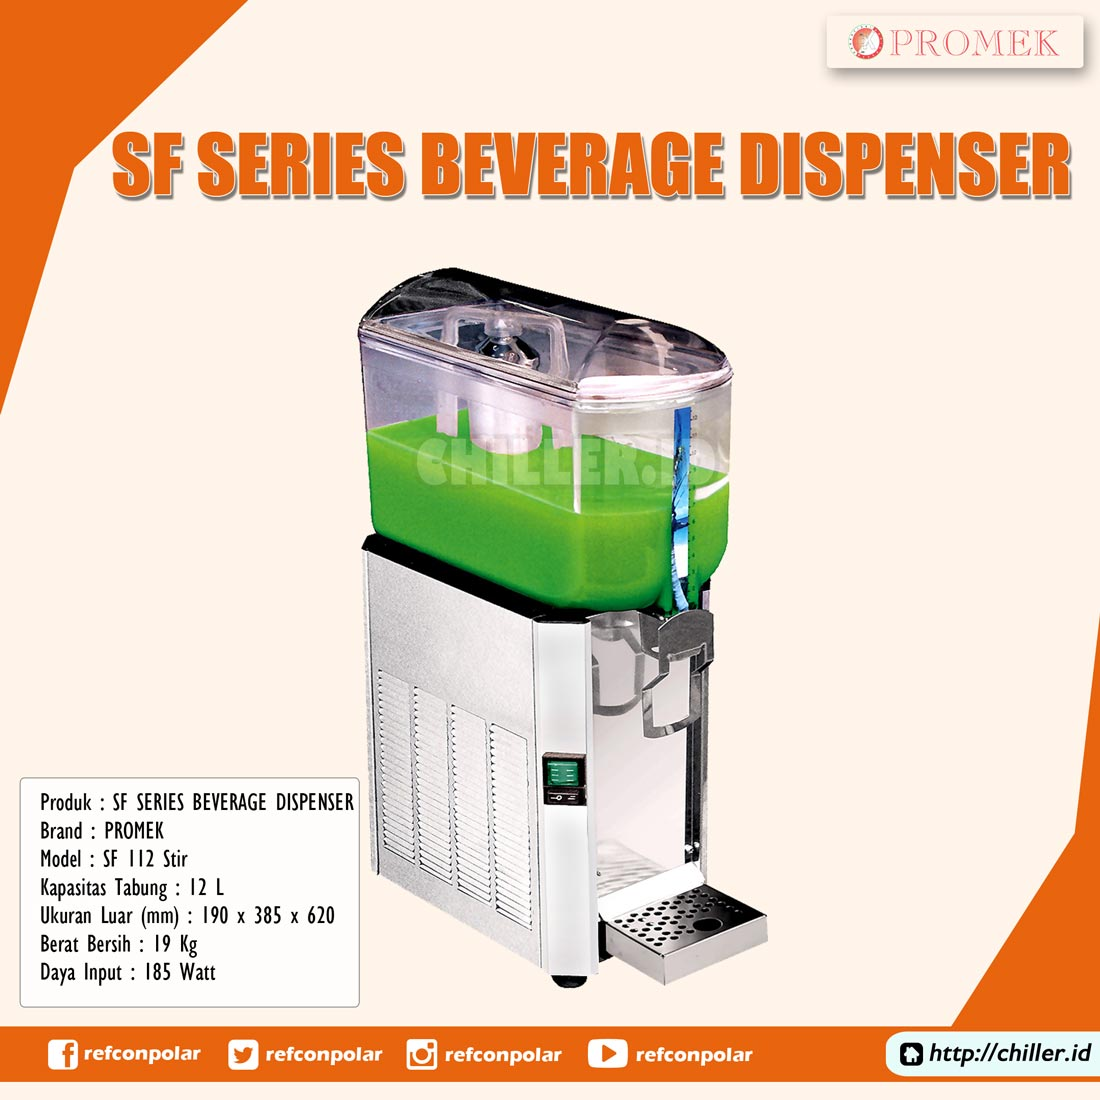 SF 112 Stir Promek SF Series Beverage Dispenser